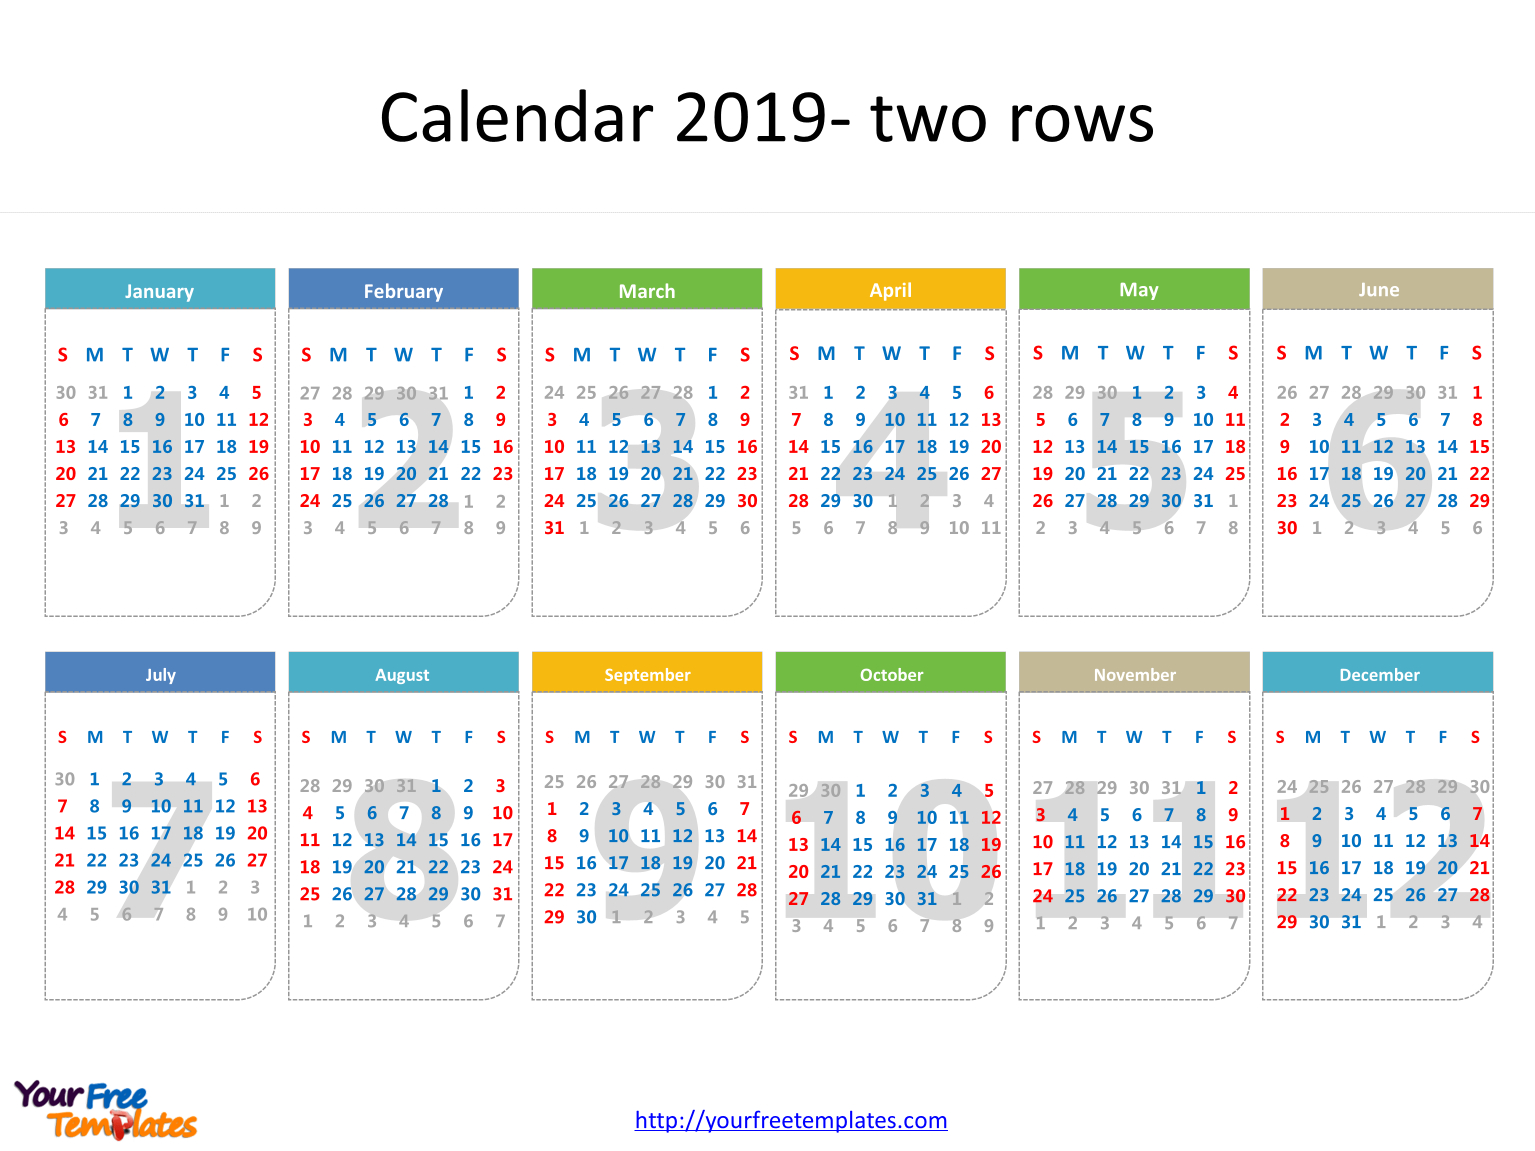 Printable Calendar 2019 Template - Free Powerpoint Templates